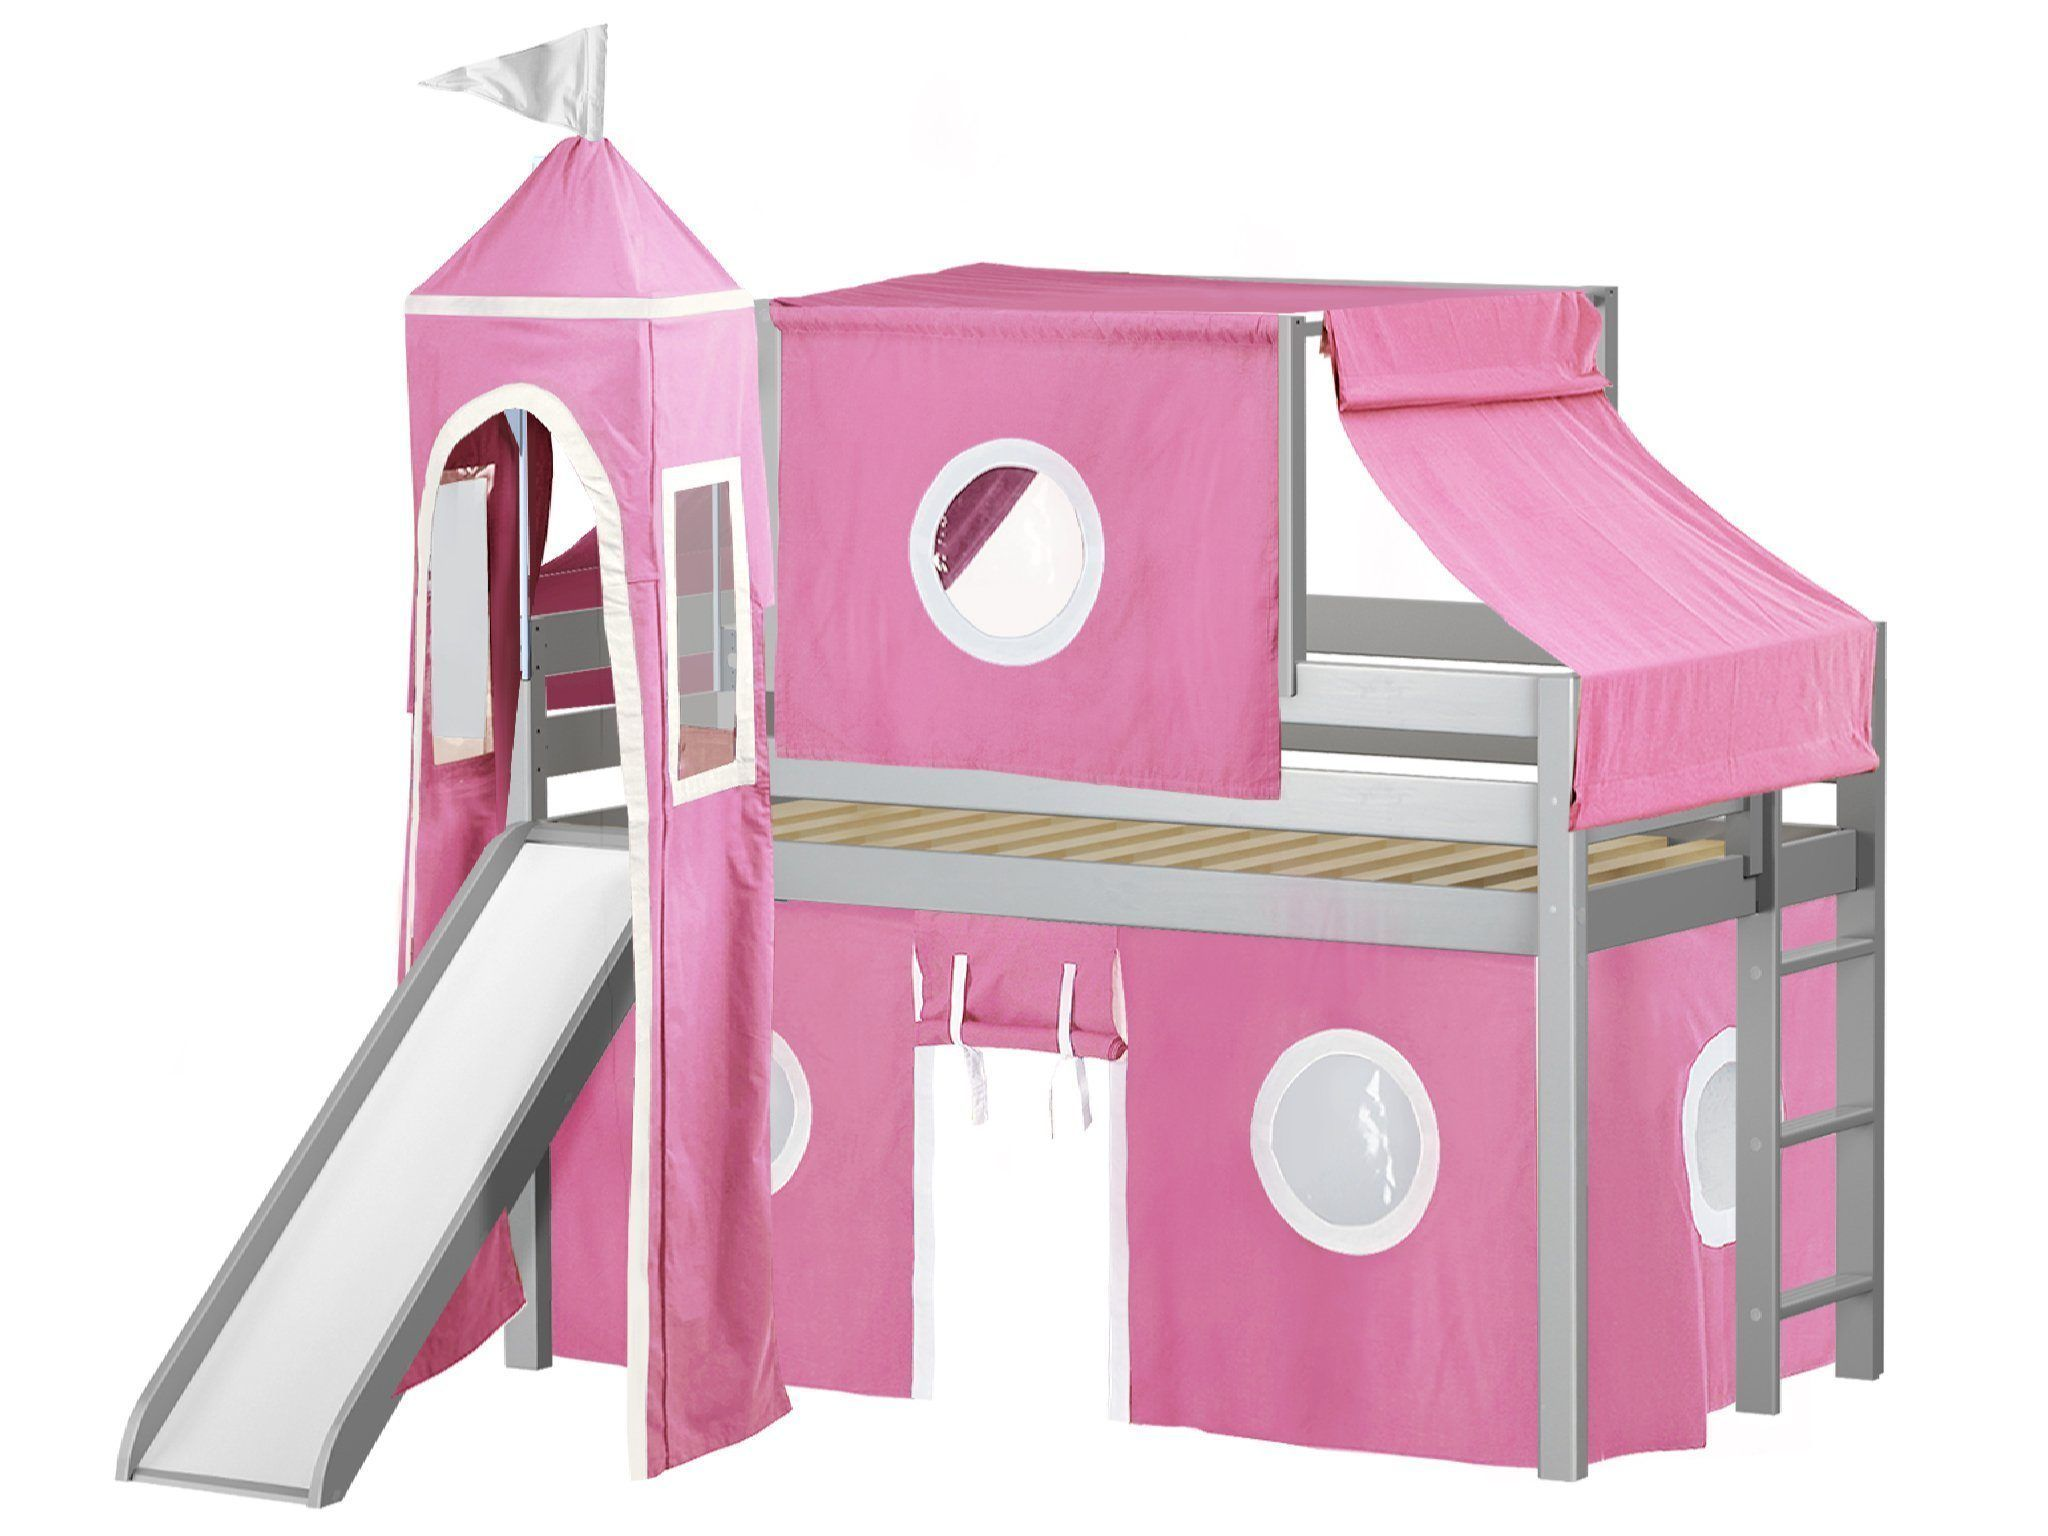 JACKPOT! Princess Twin Low Loft Bed in GRAY with Slide